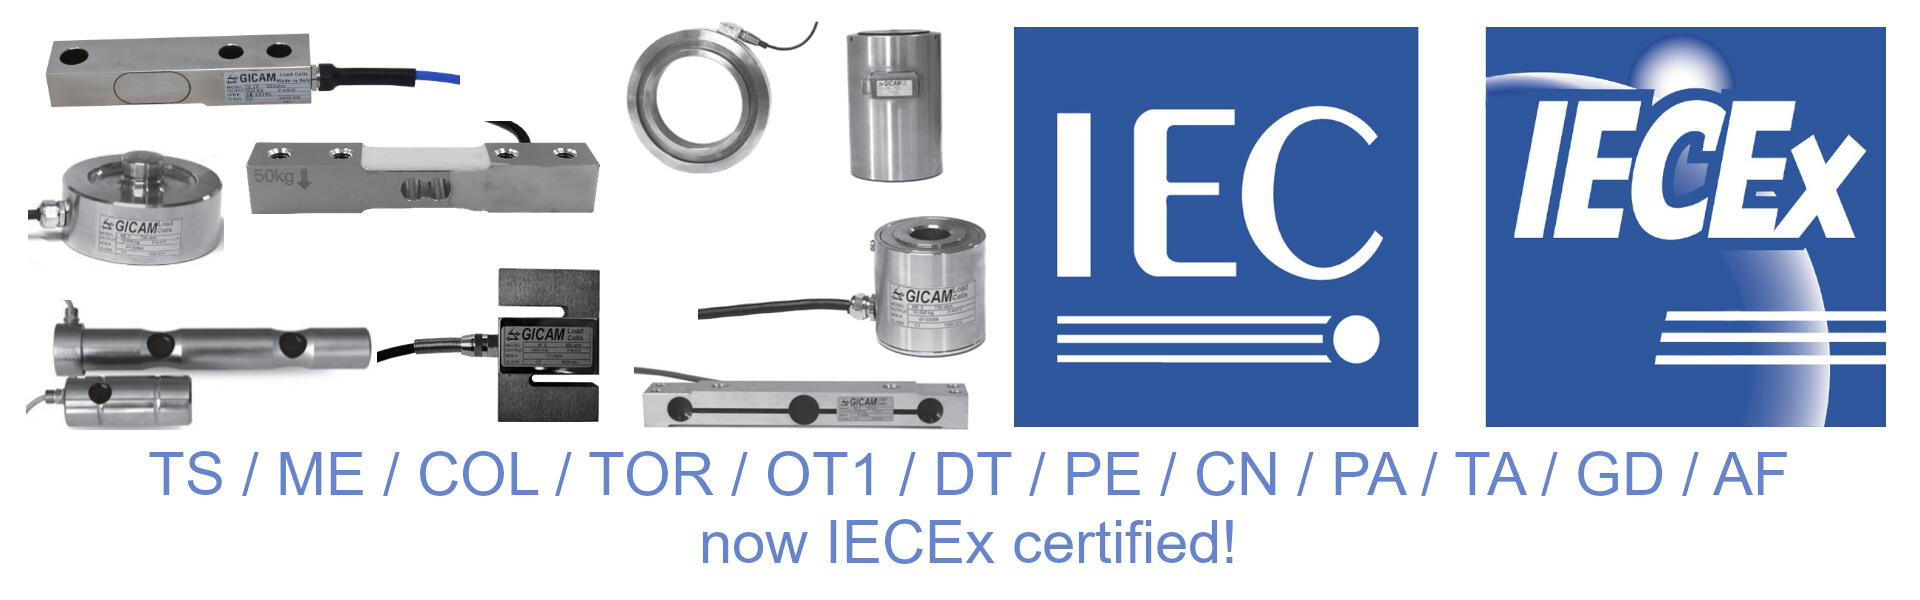 New IECEx certification for Gicam